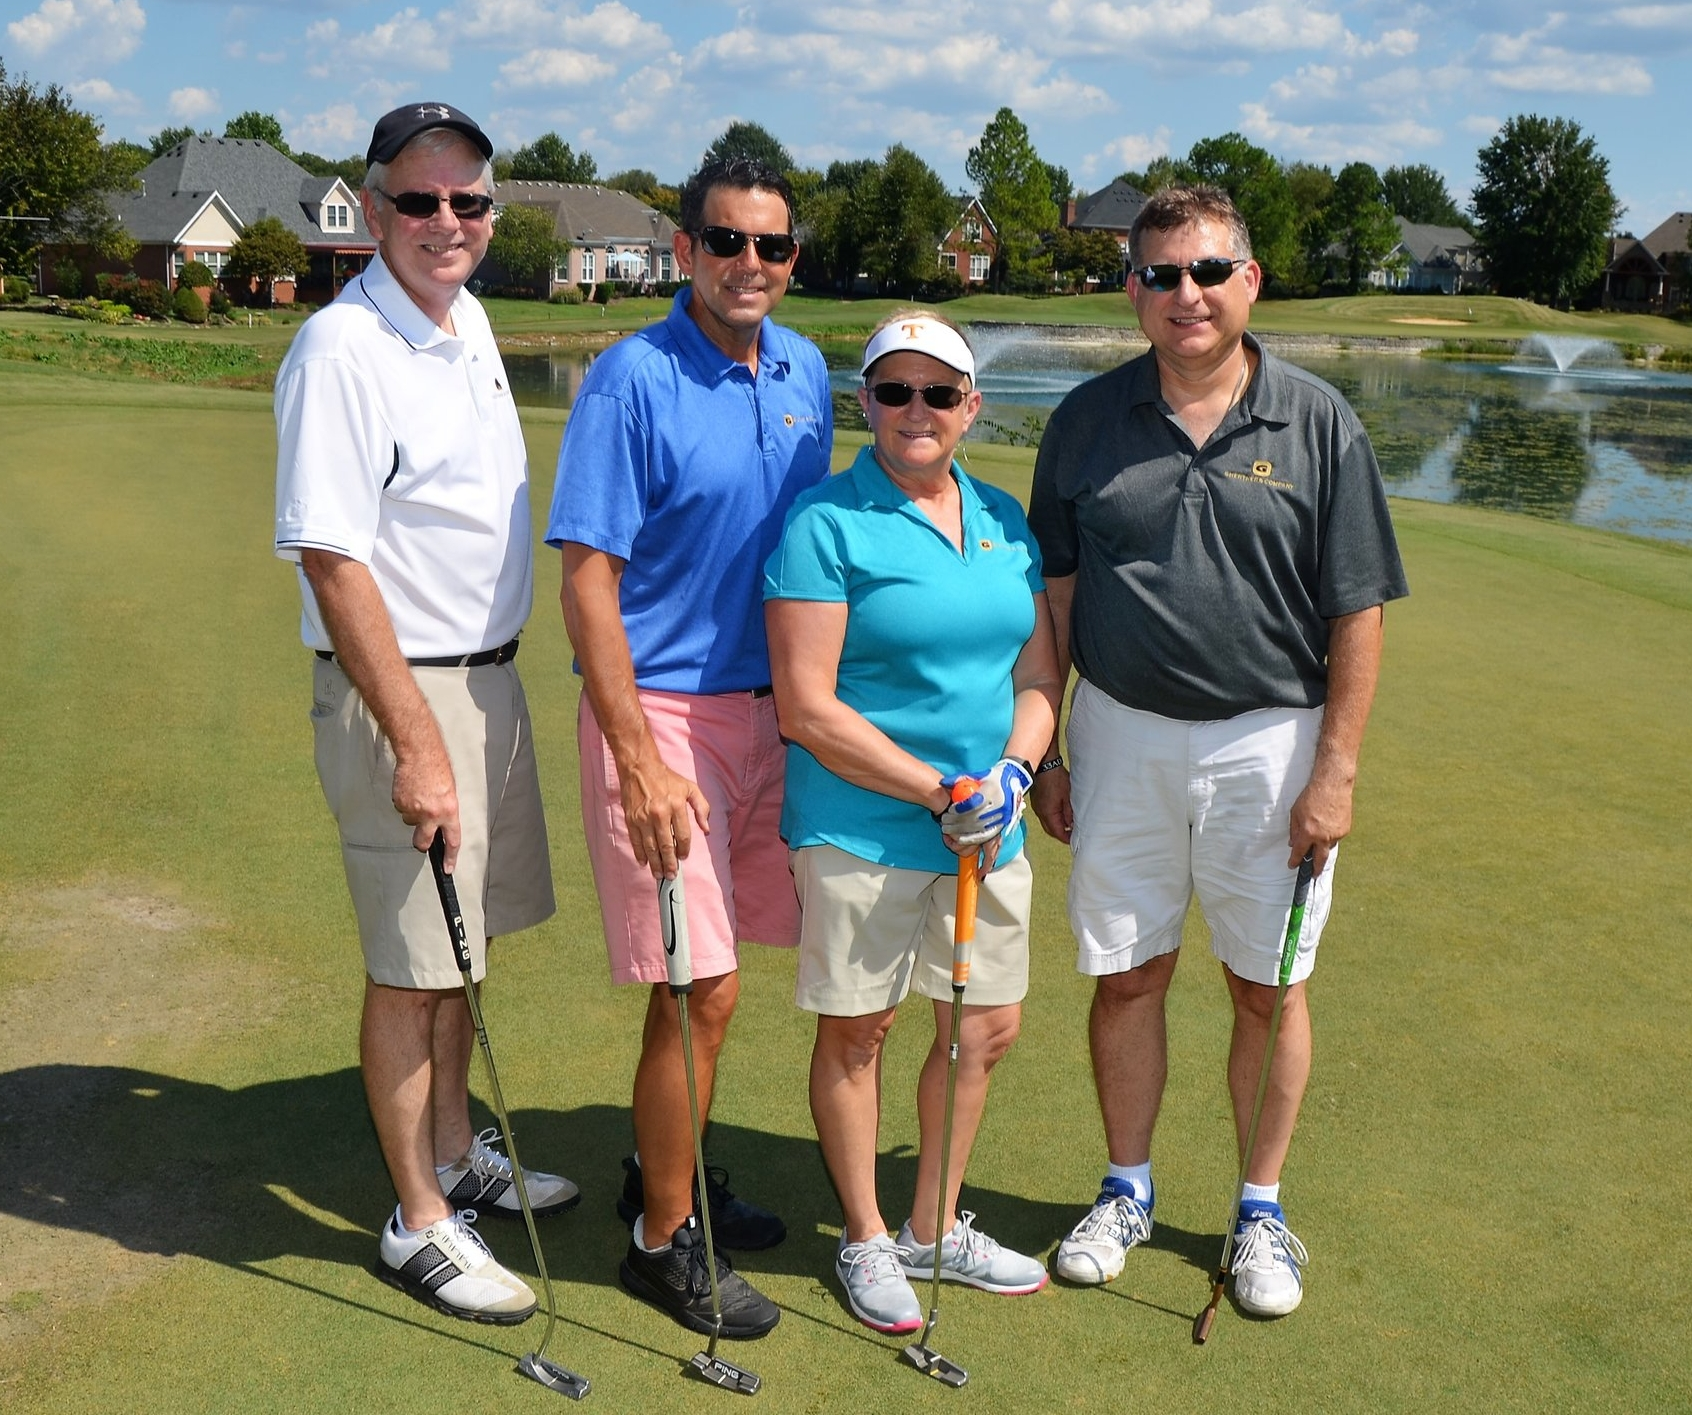 Representing Ghertner & Company were Stacy Adams, Human Resources Director, and Community Association Managers Bob Welborn, John Knouff, and Jeff Campbell.